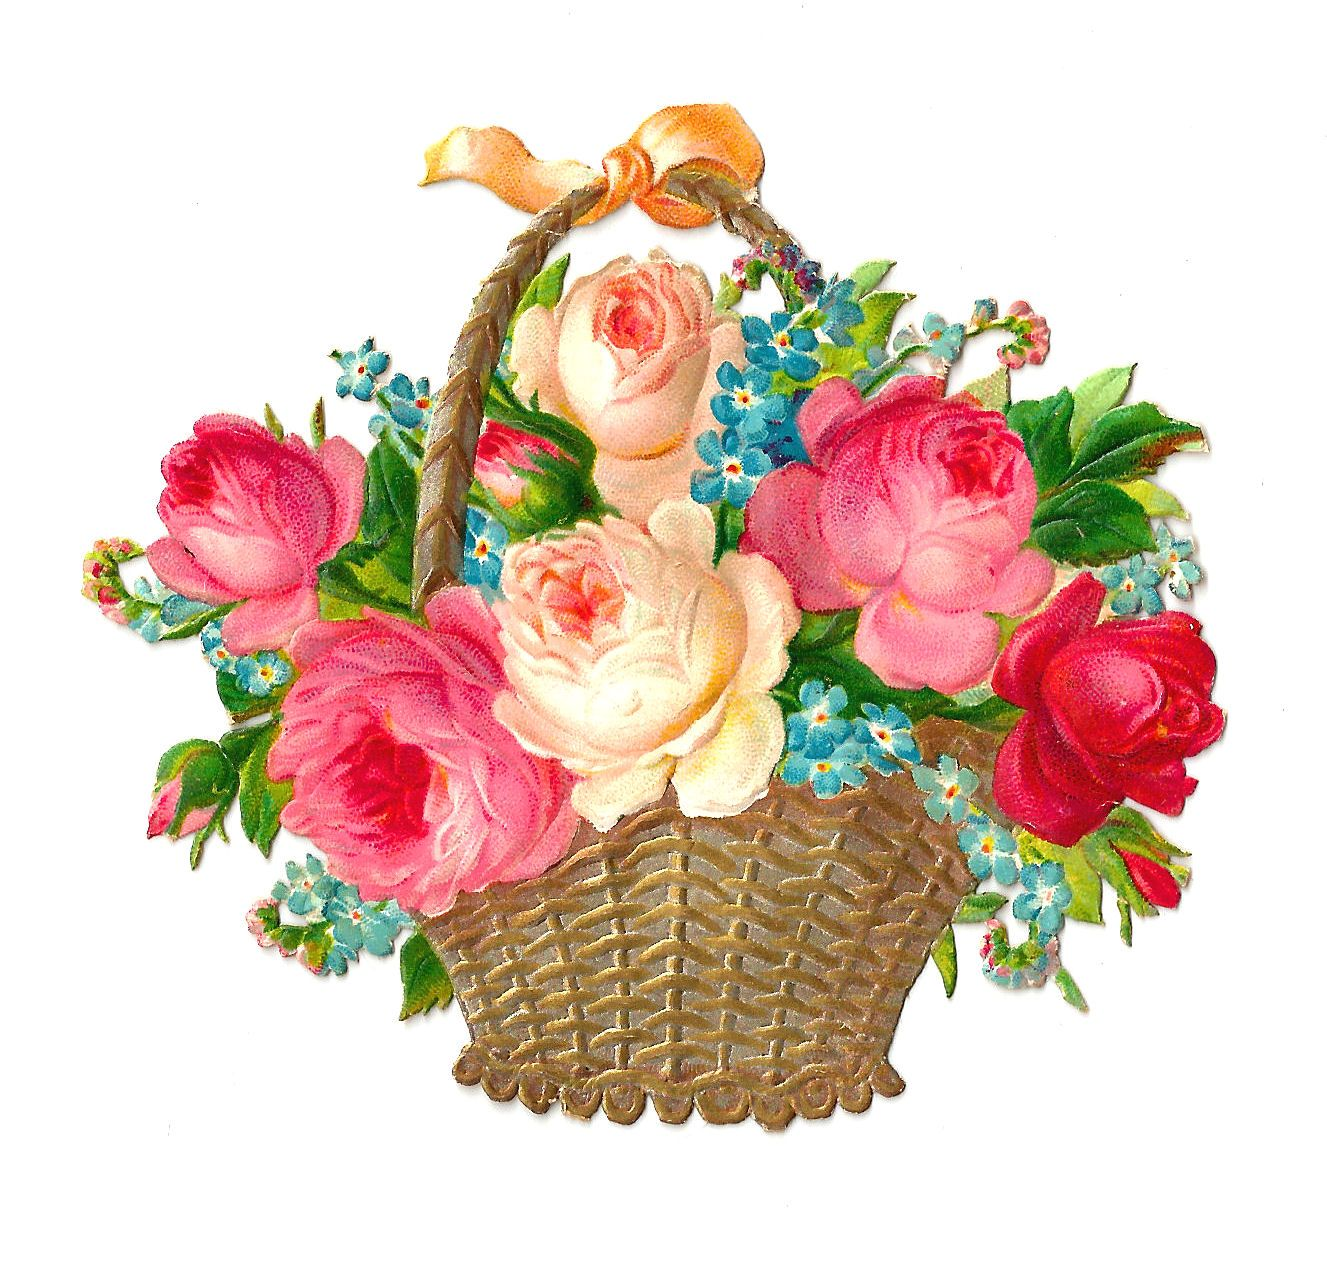 Antique nosegay clipart free image royalty free download Antique Images: Free Flower Clip Art: Vintage Pink and Red Rose ... image royalty free download